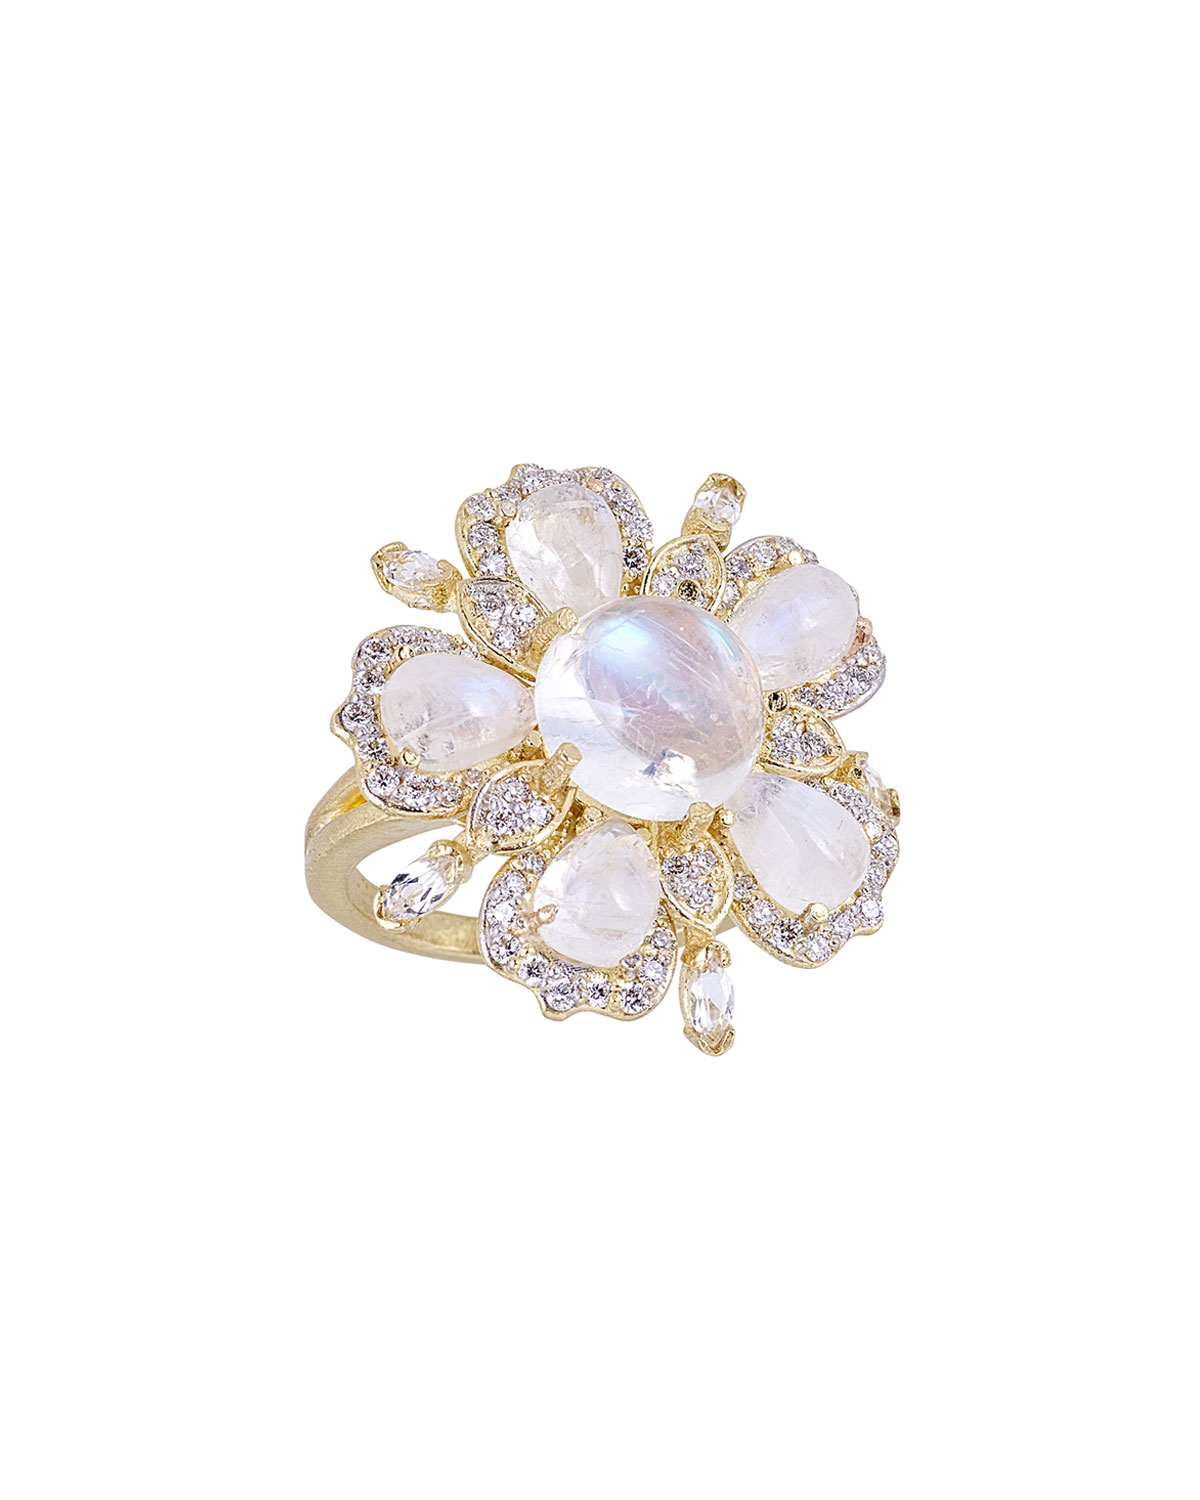 TANYA FARAH 18K Royal Couture Moonstone Flower Ring, Size 6.75